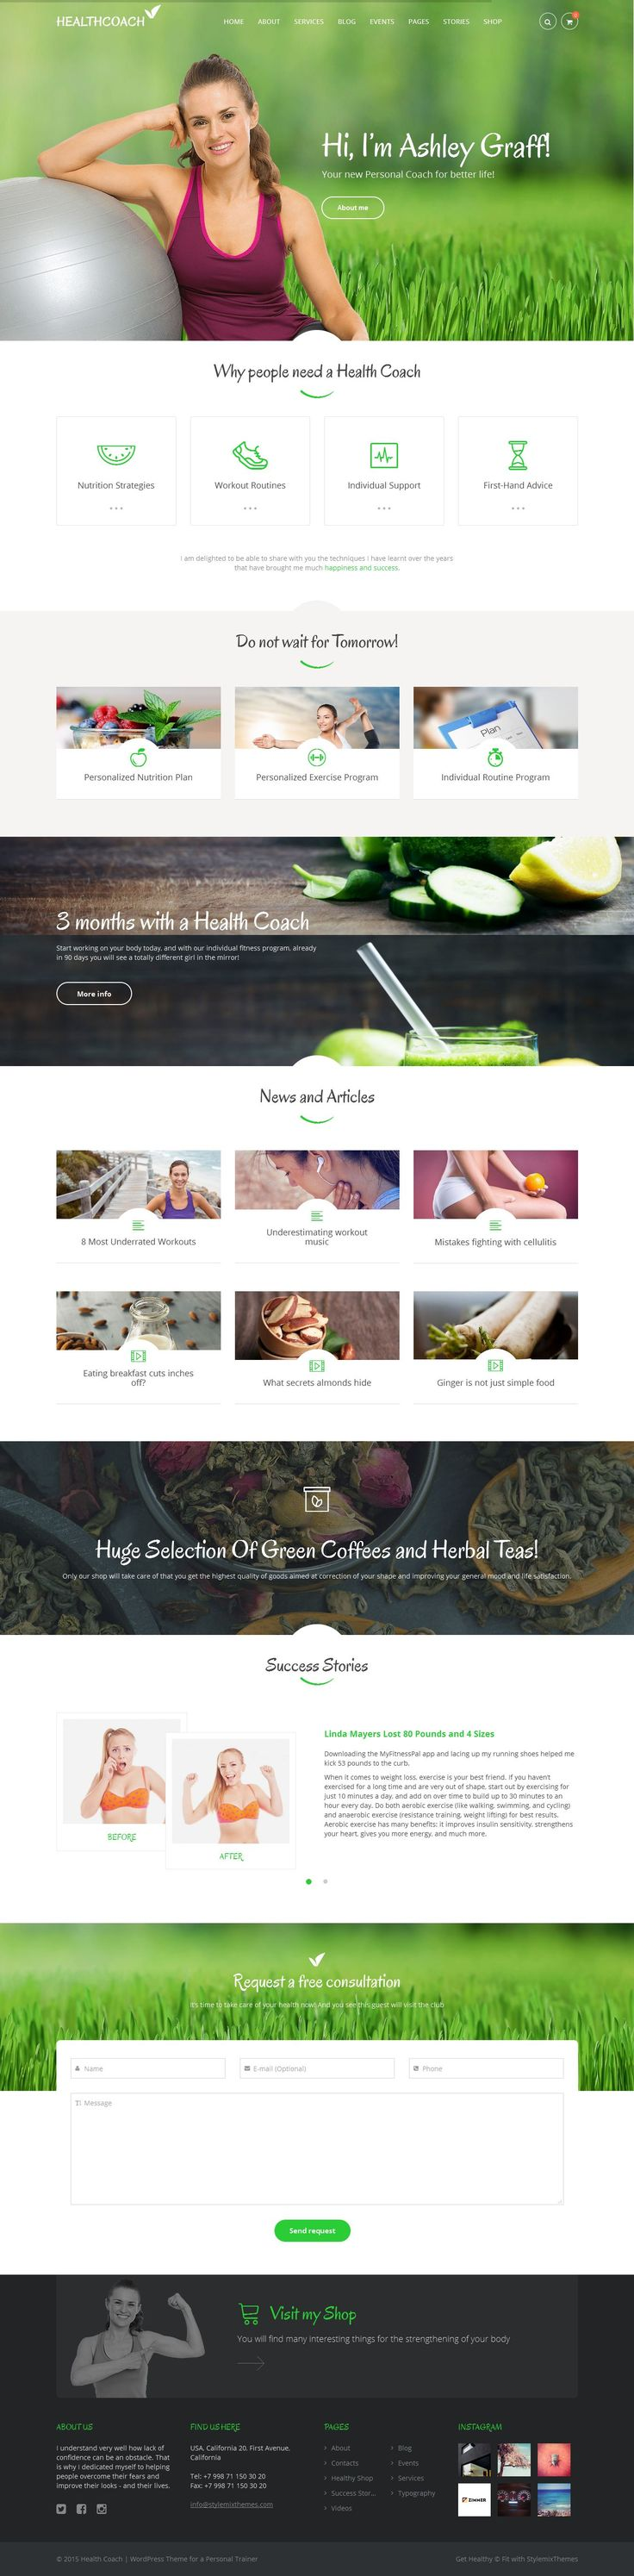 Wordpress Website Theme for Life and Health Coach